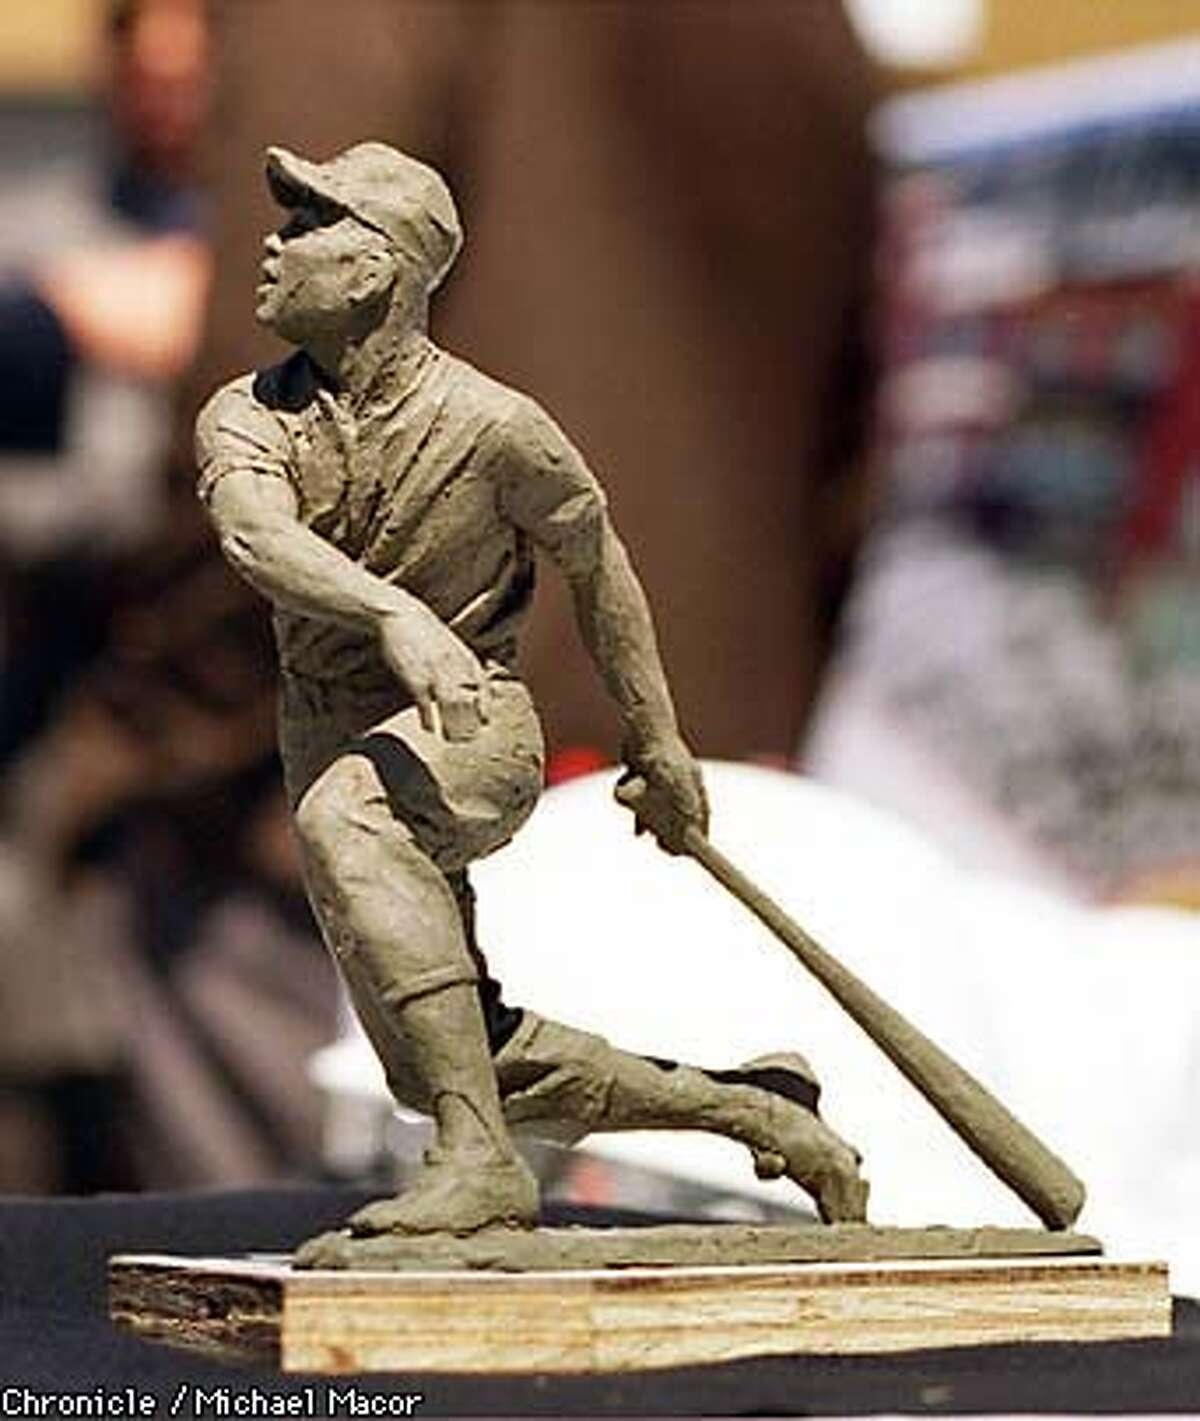 The Giants will honor Willie Mays with a bronze statue at the entrance of the new Pacific Bell Ballpark. A clay model of the sculpture, by artist William Behrends, will be over 9 feet tall. By Michael Macor/The Chronicle